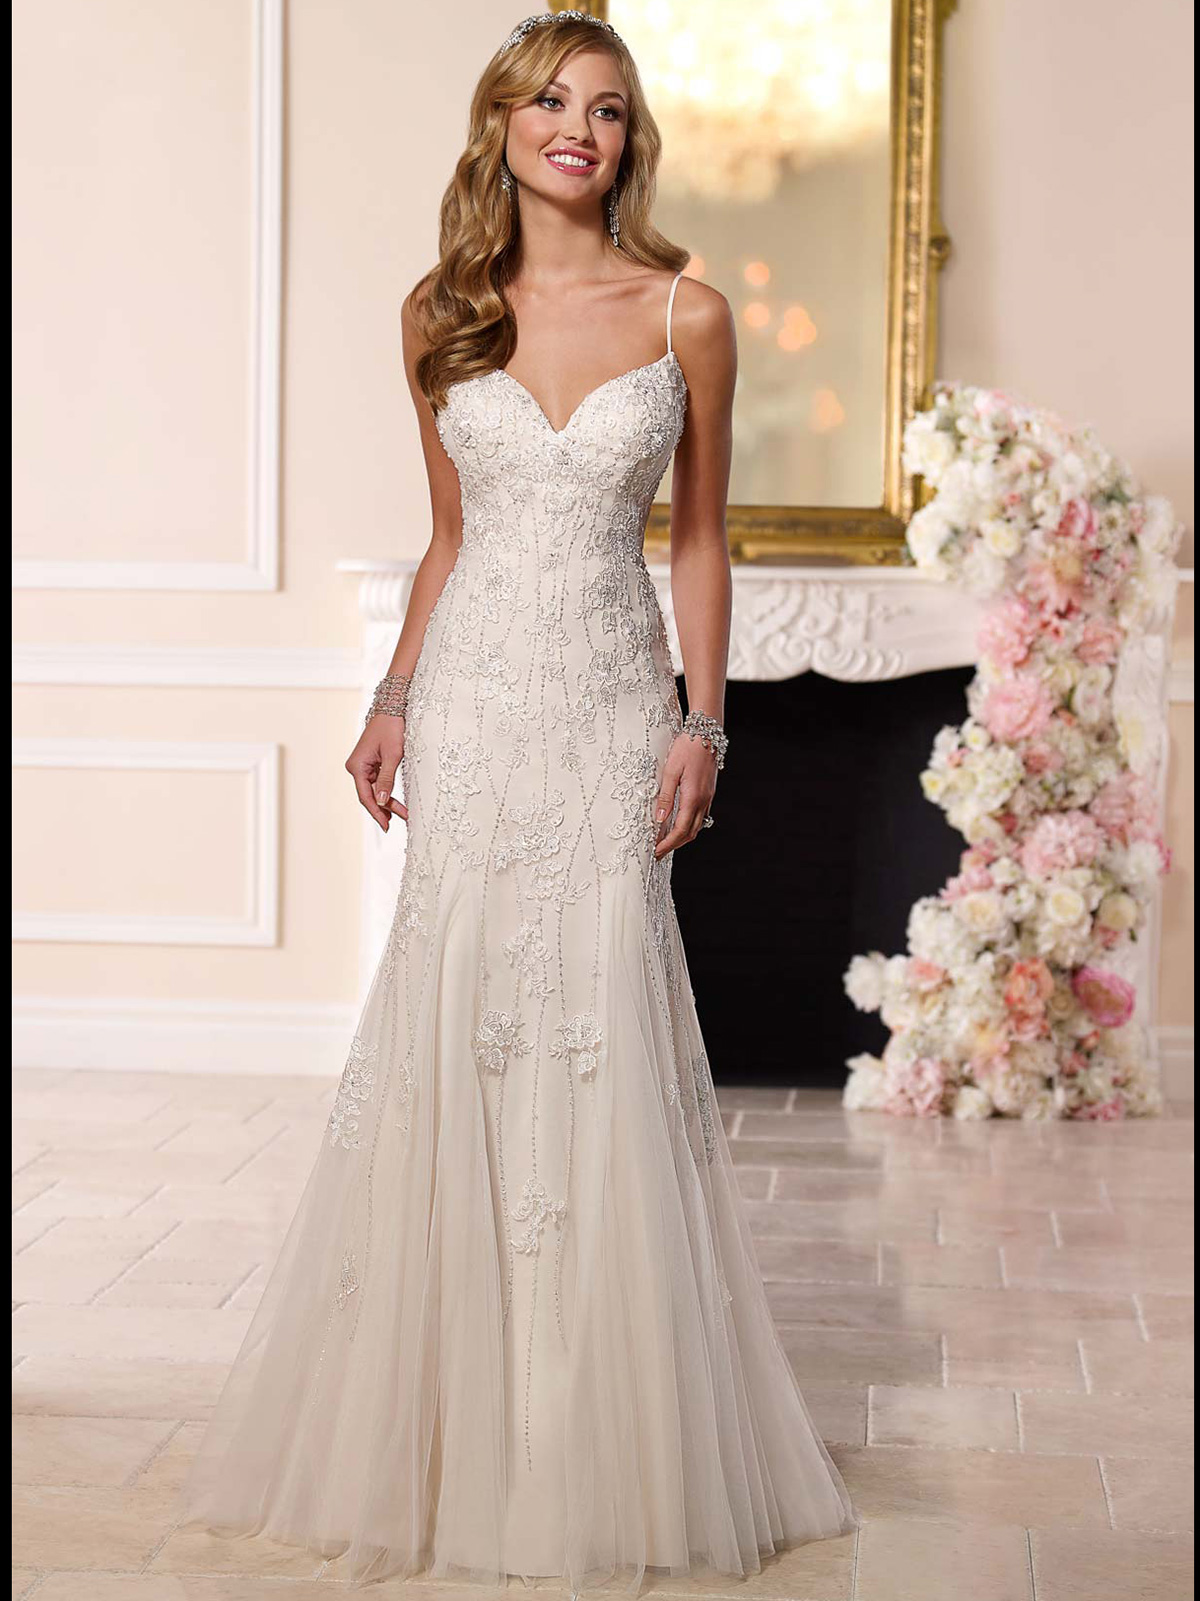 Stella York 6203 Spaghetti Straps Mermaid Wedding Dress